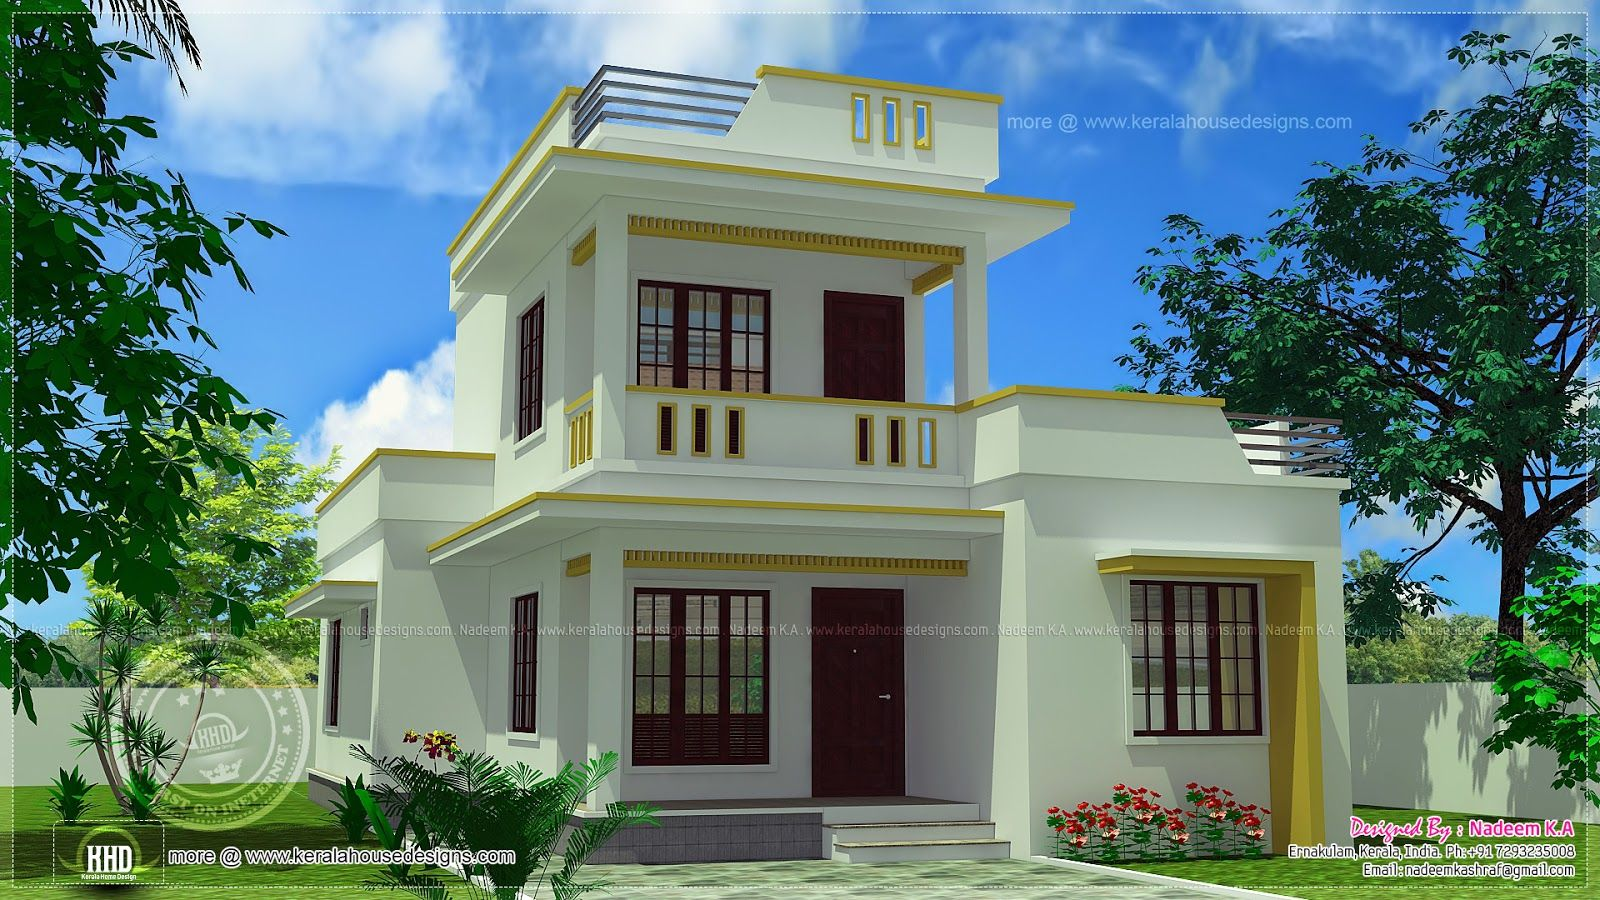 Roof home design feet kerala plans simple modern house for Modern house simple